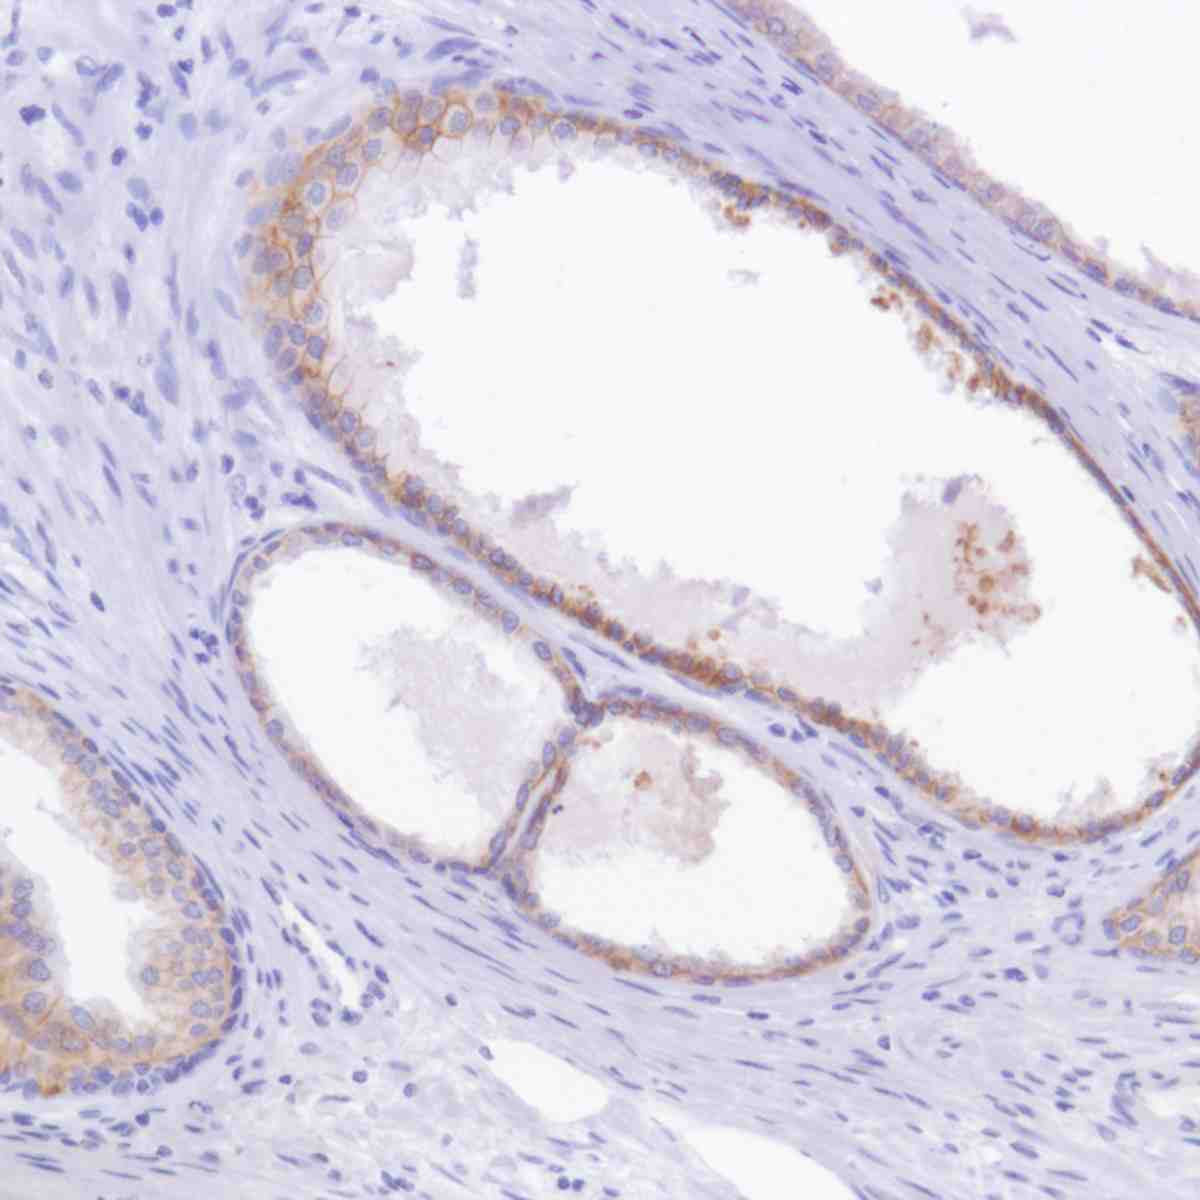 Human Prostate stained with anti-TROP-2 antibody